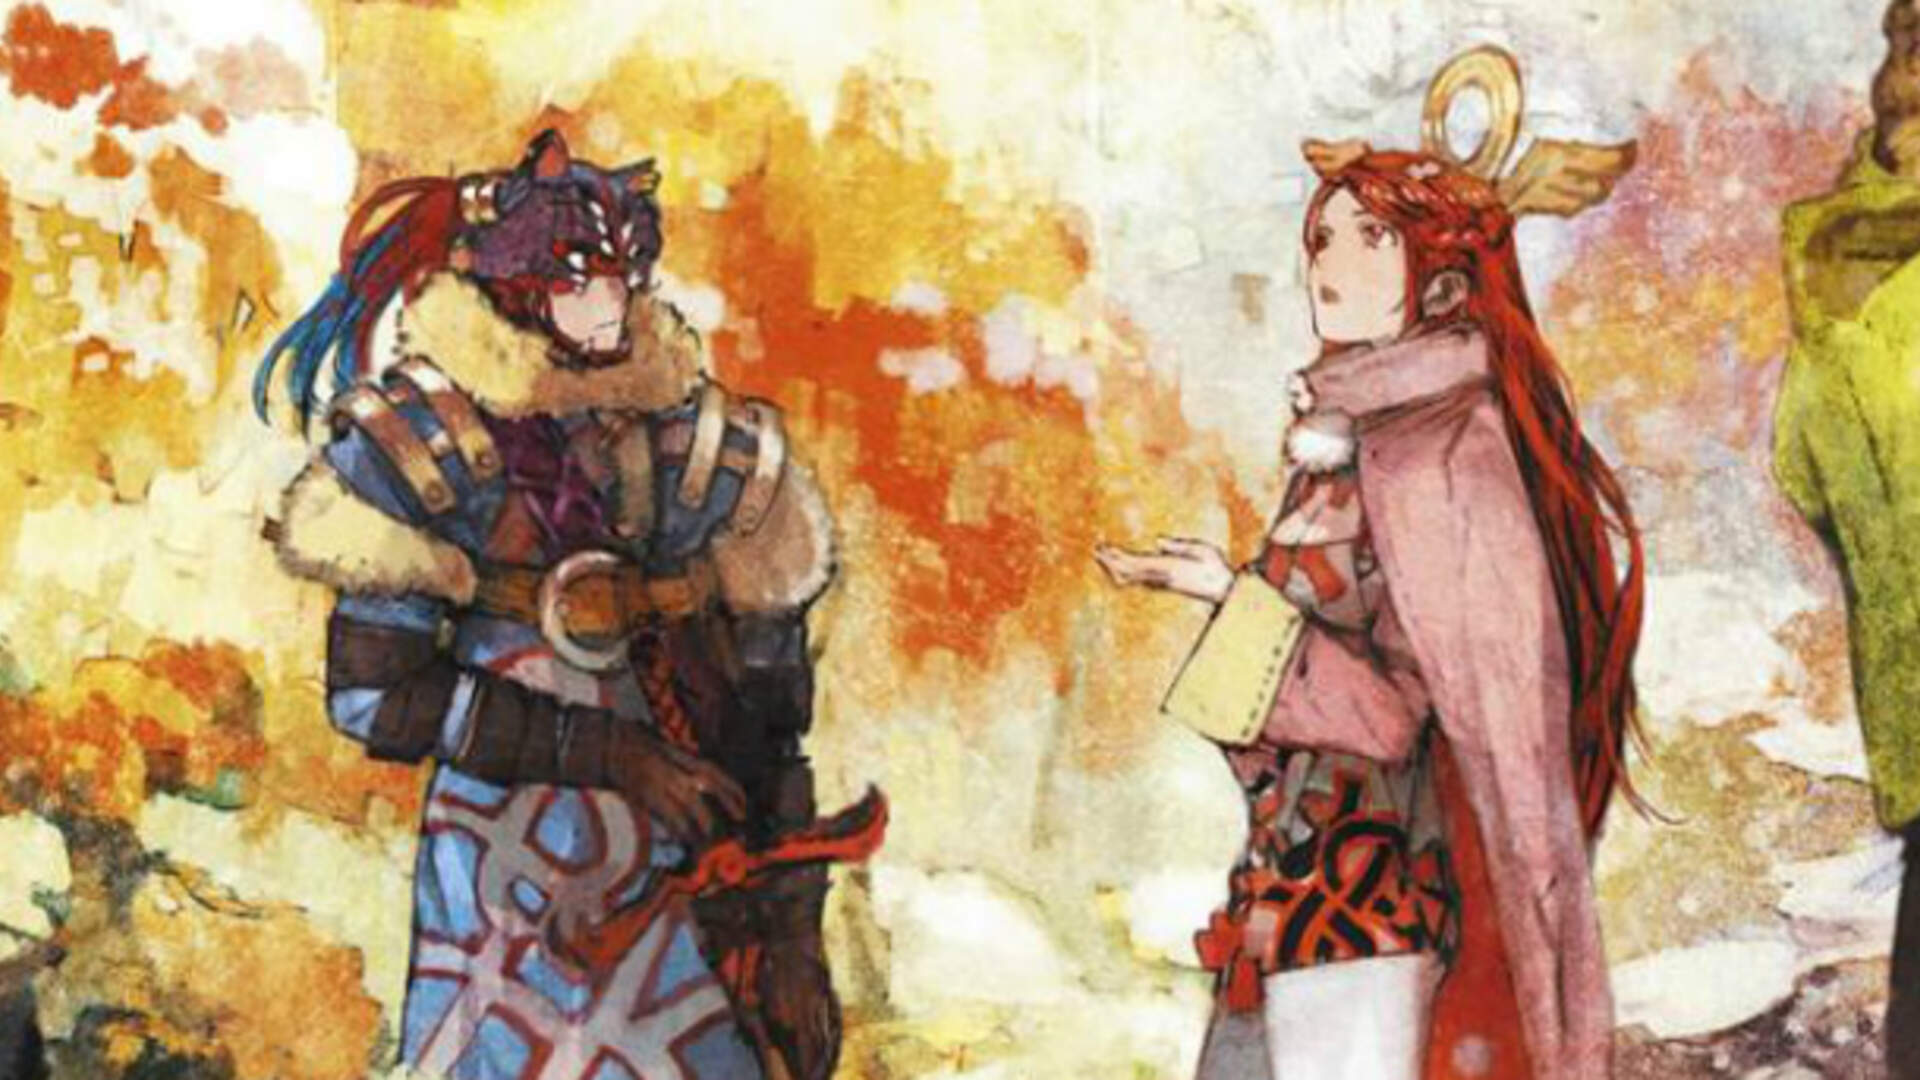 I Am Setsuna Won't Have a Direct Sequel, Says Tokyo RPG Factory